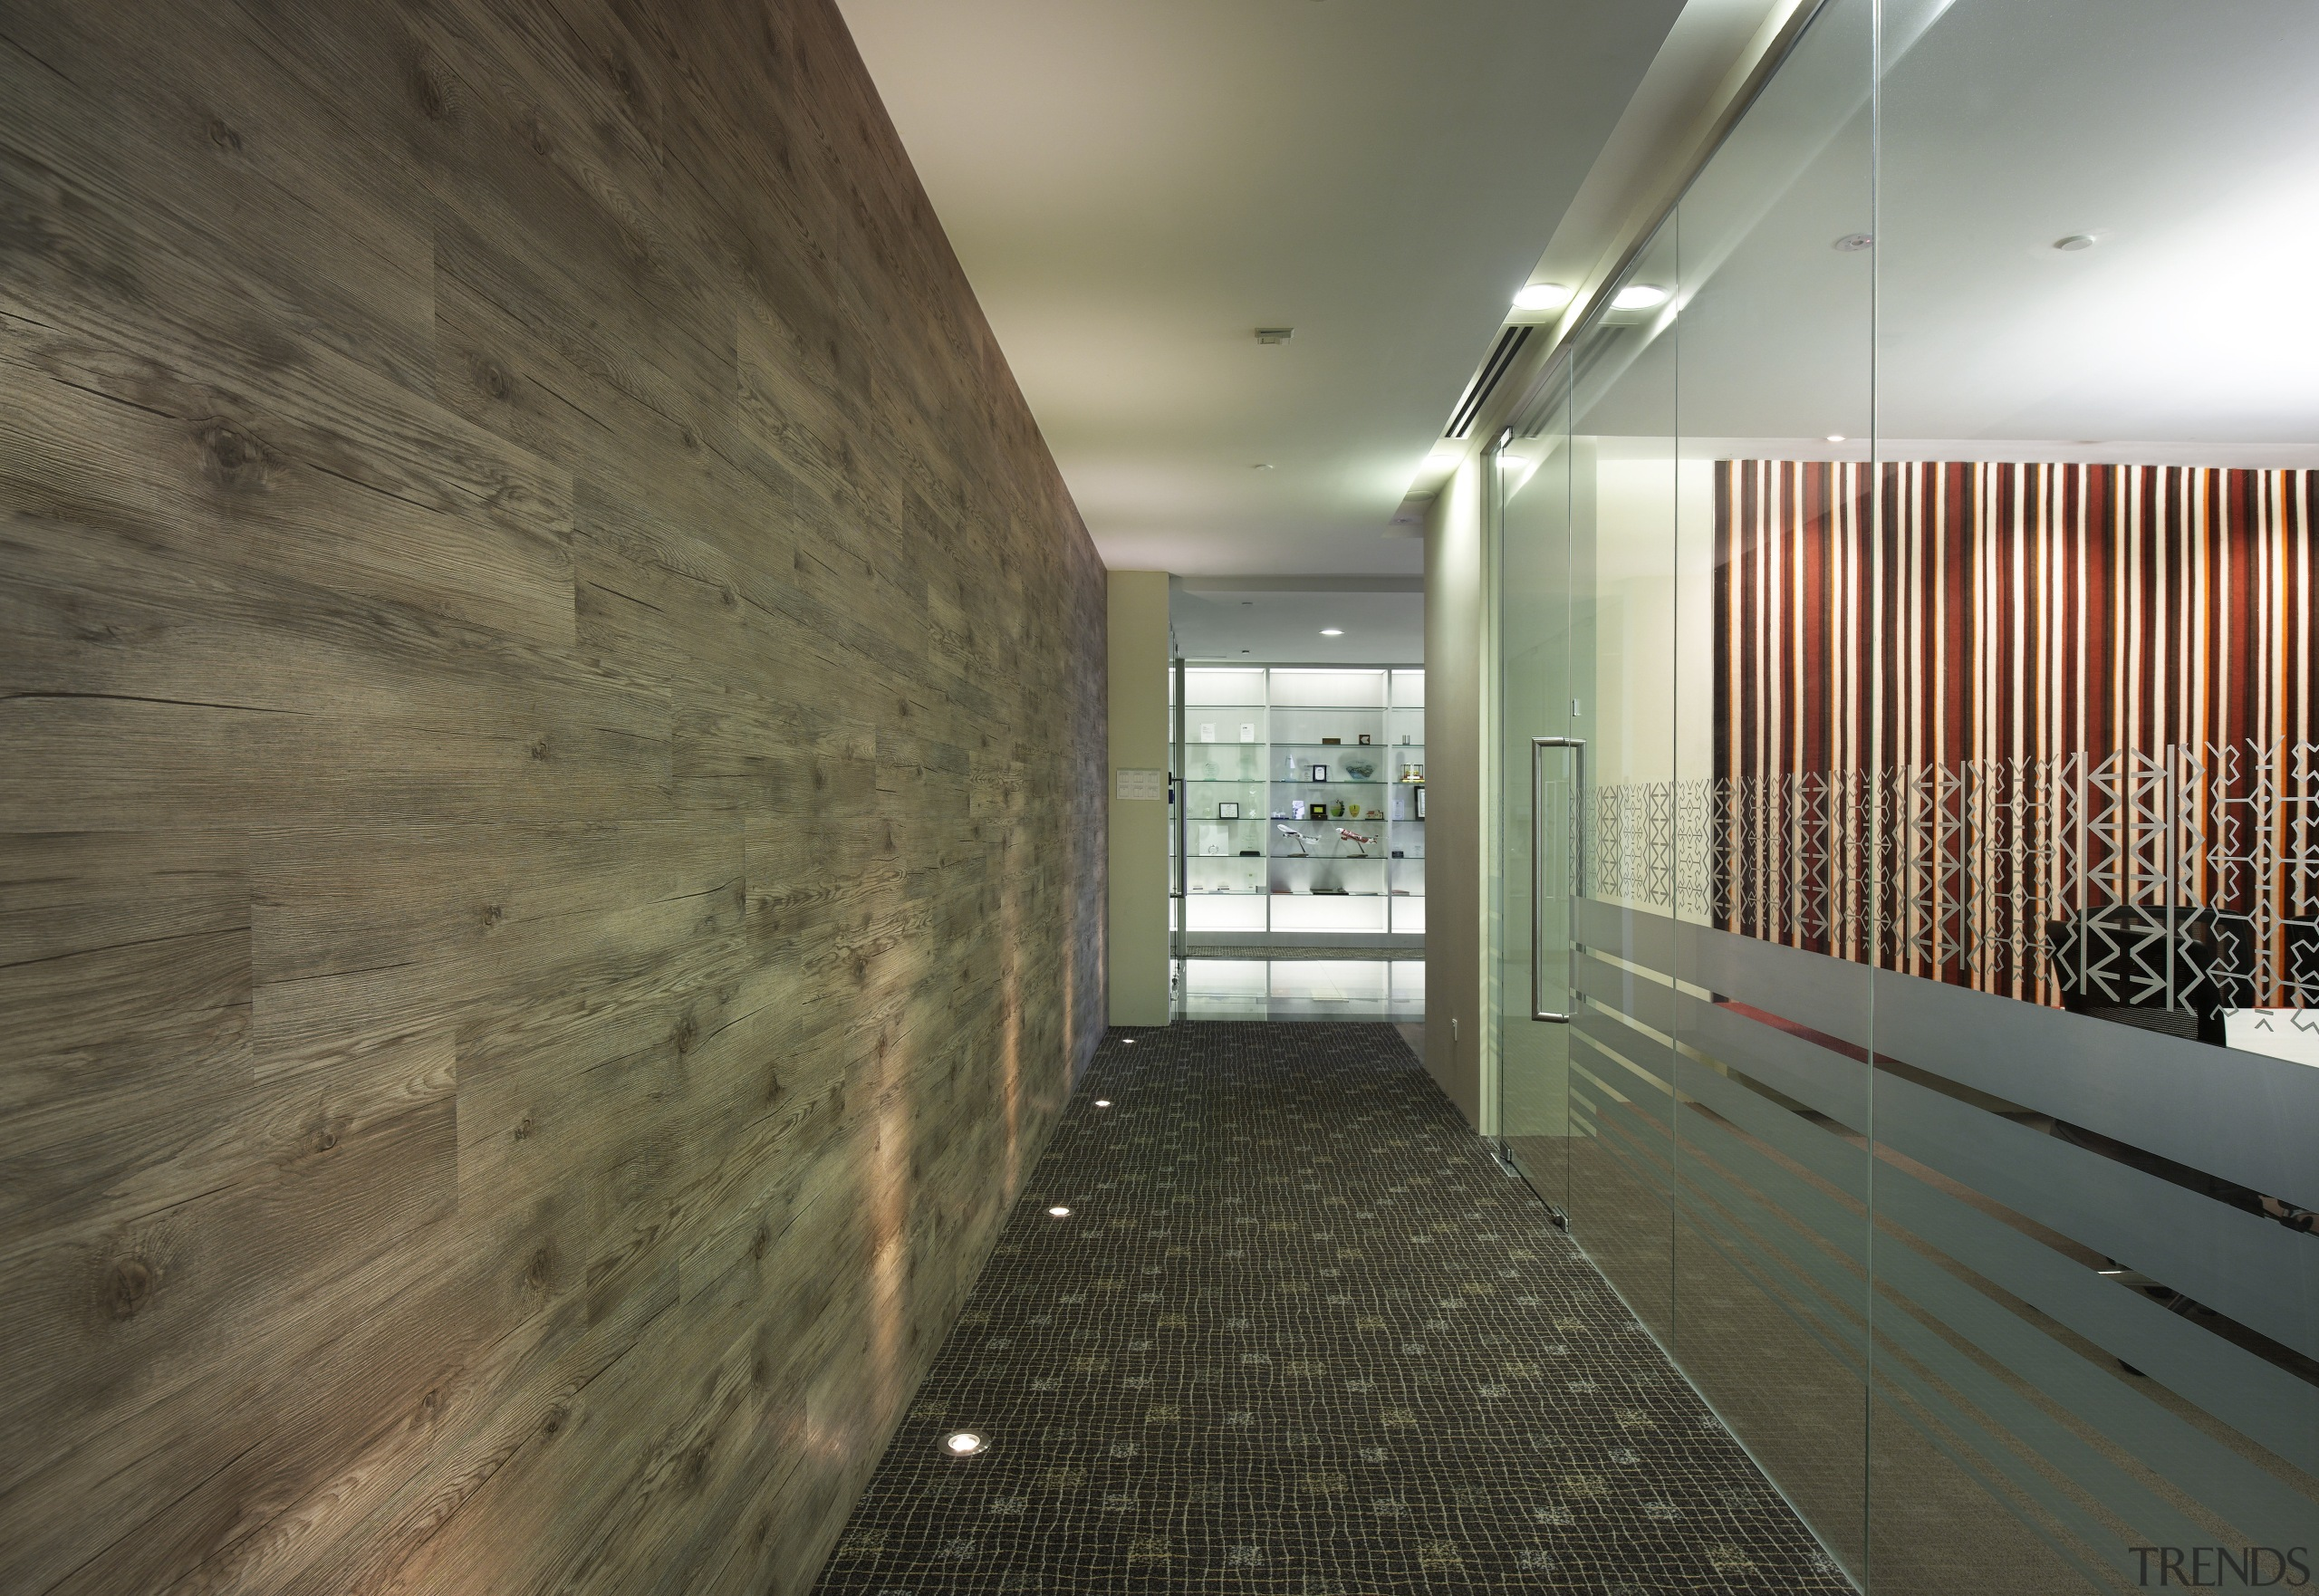 Natural surfaces feature in this fit-out of the architecture, ceiling, daylighting, interior design, lobby, real estate, wall, wood, brown, gray